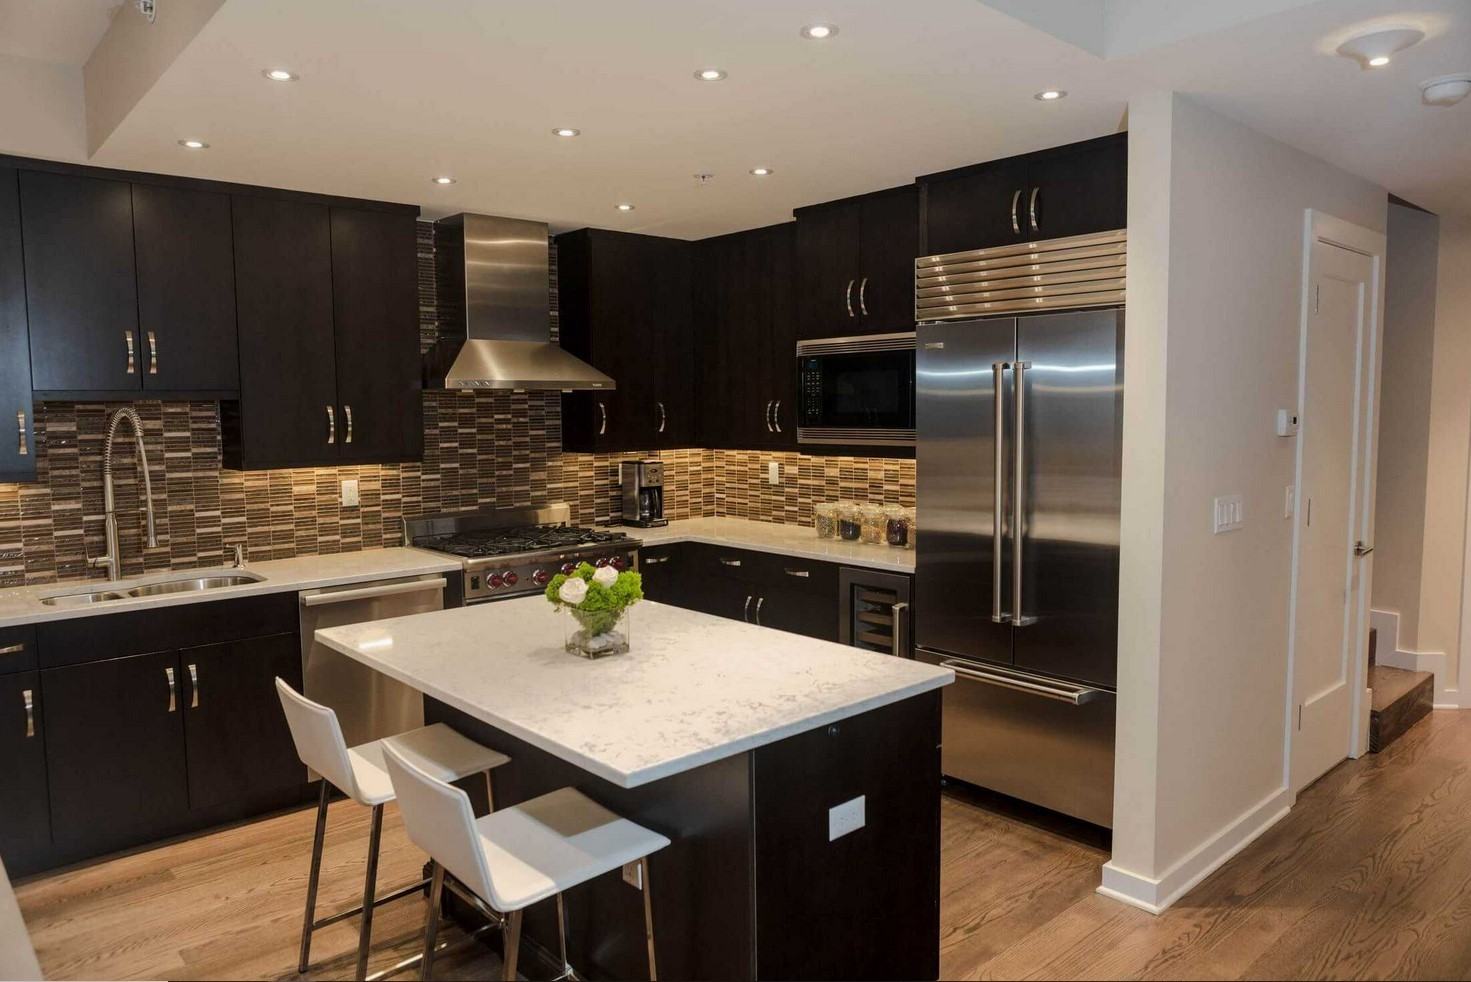 What Color Flooring Go With Dark Kitchen Cabinets